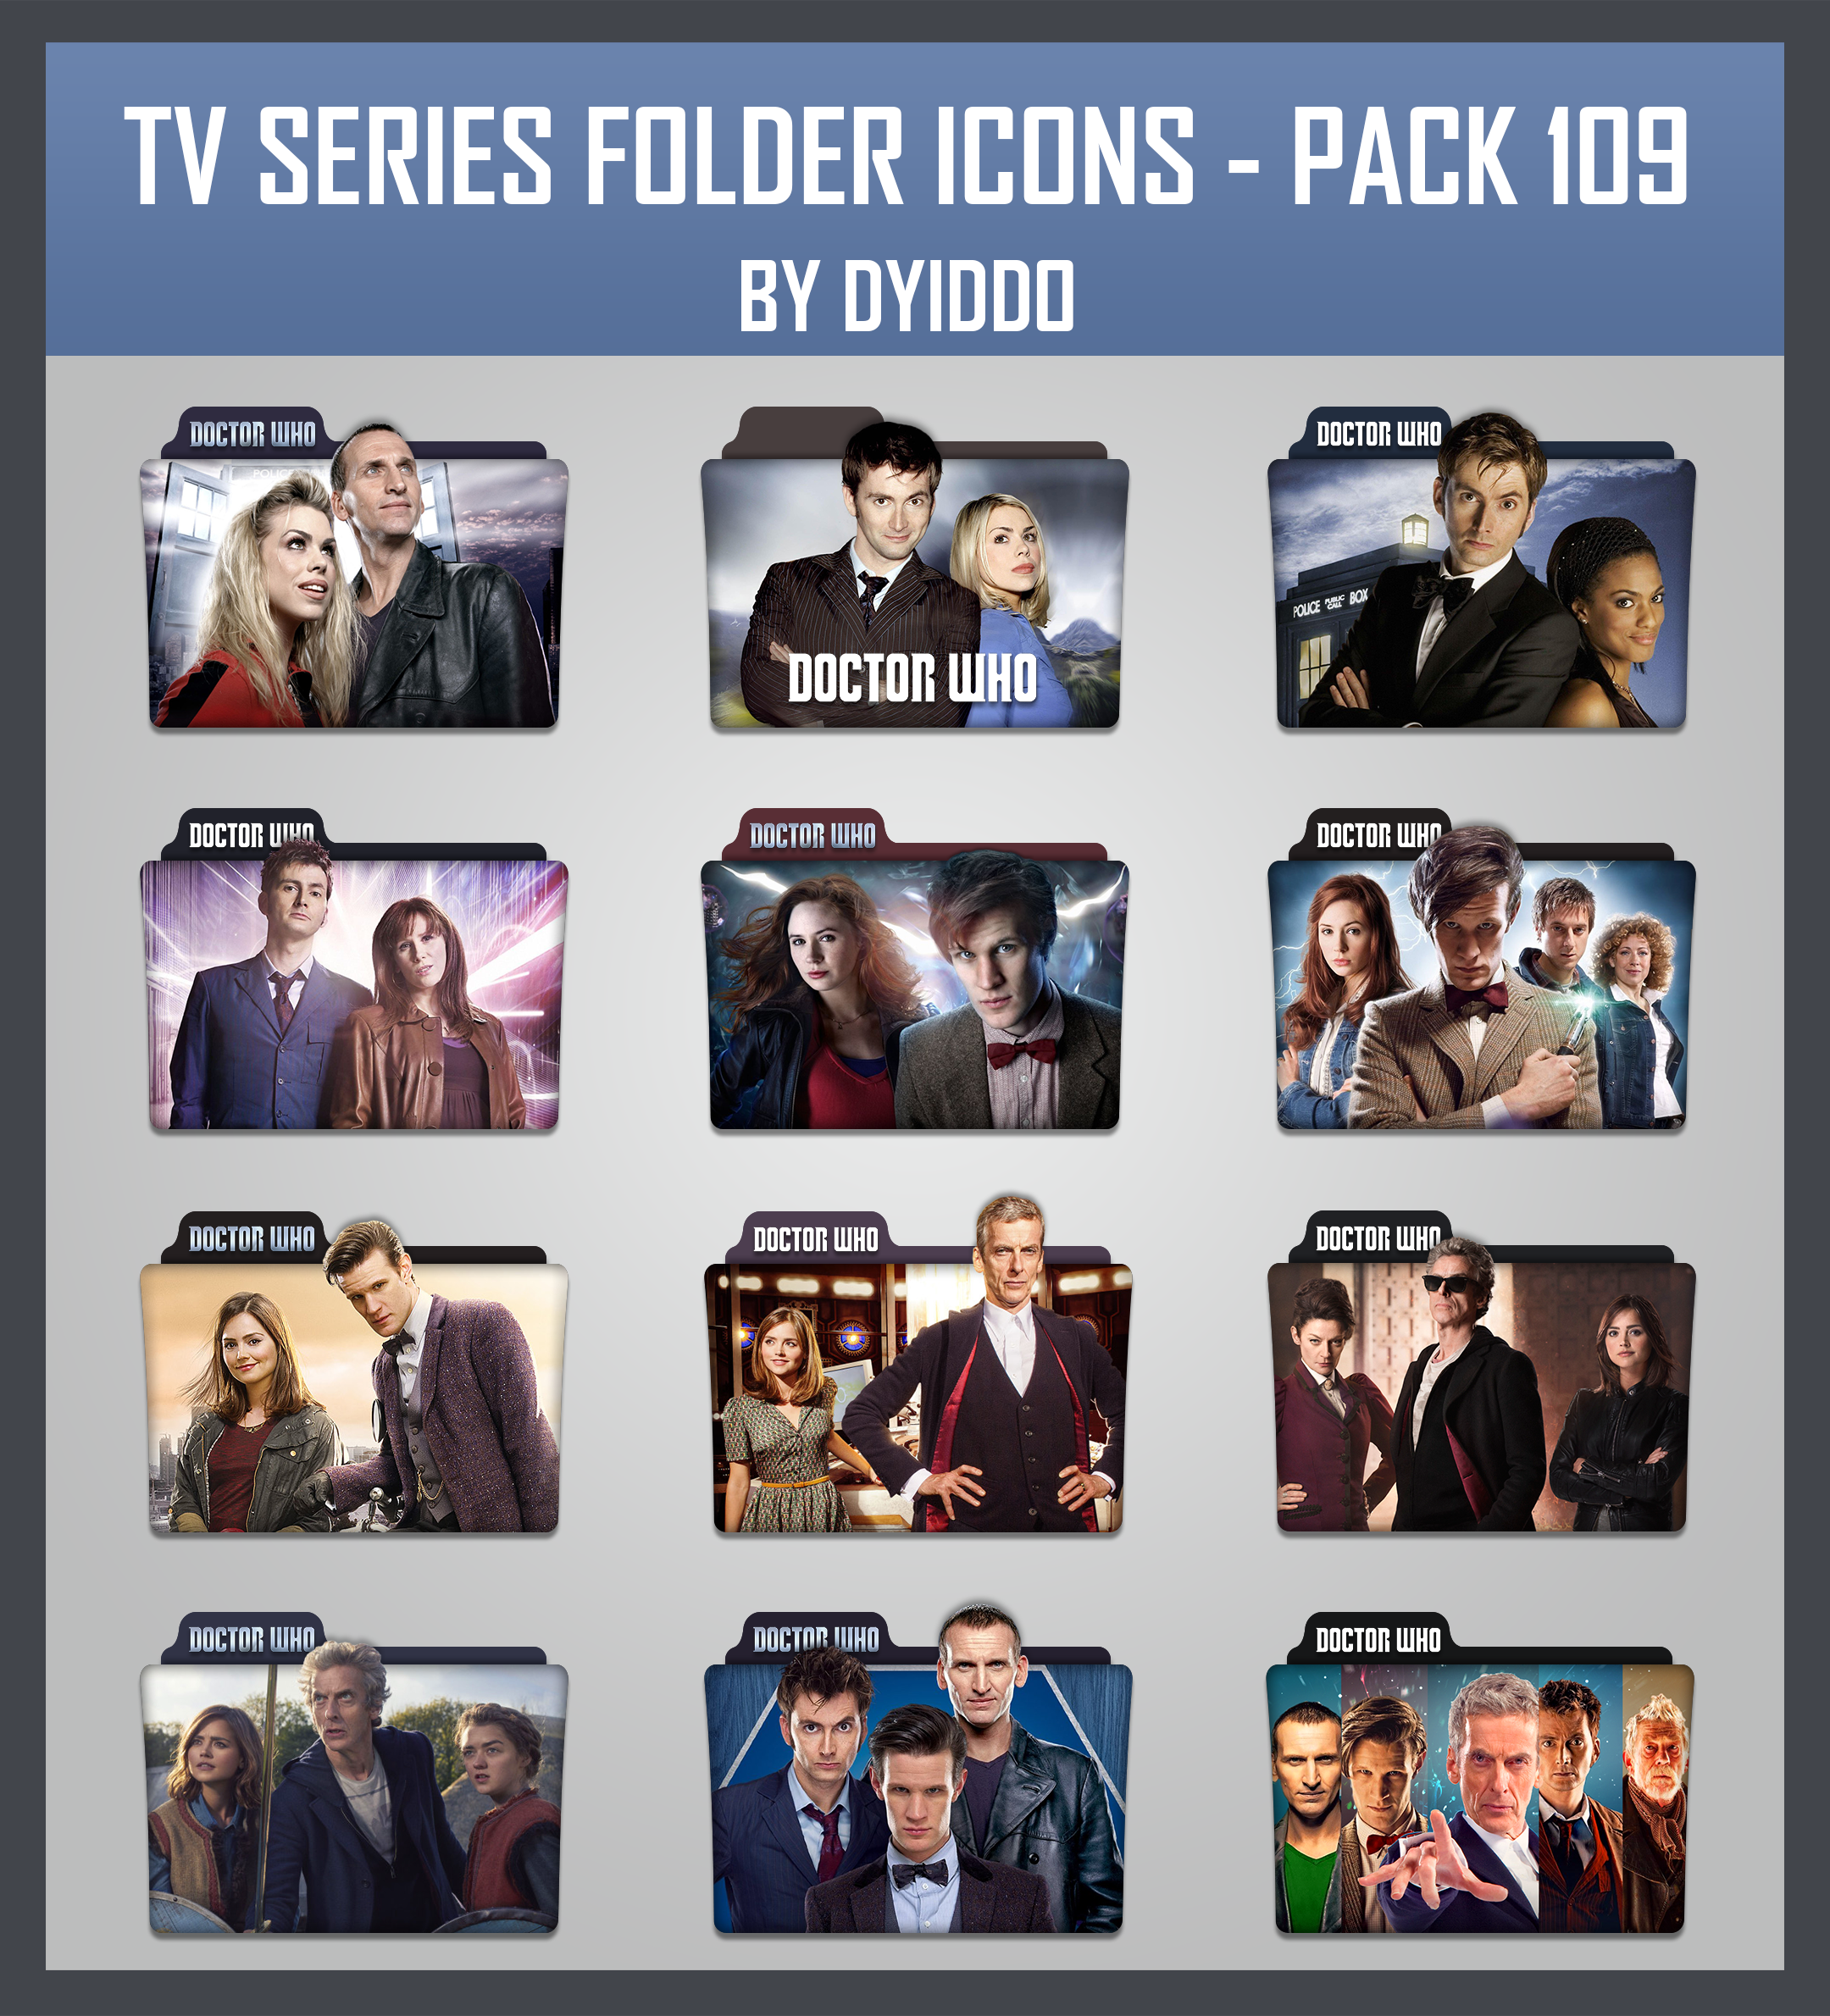 tv series folder icons pack 109 by dyiddo on deviantart